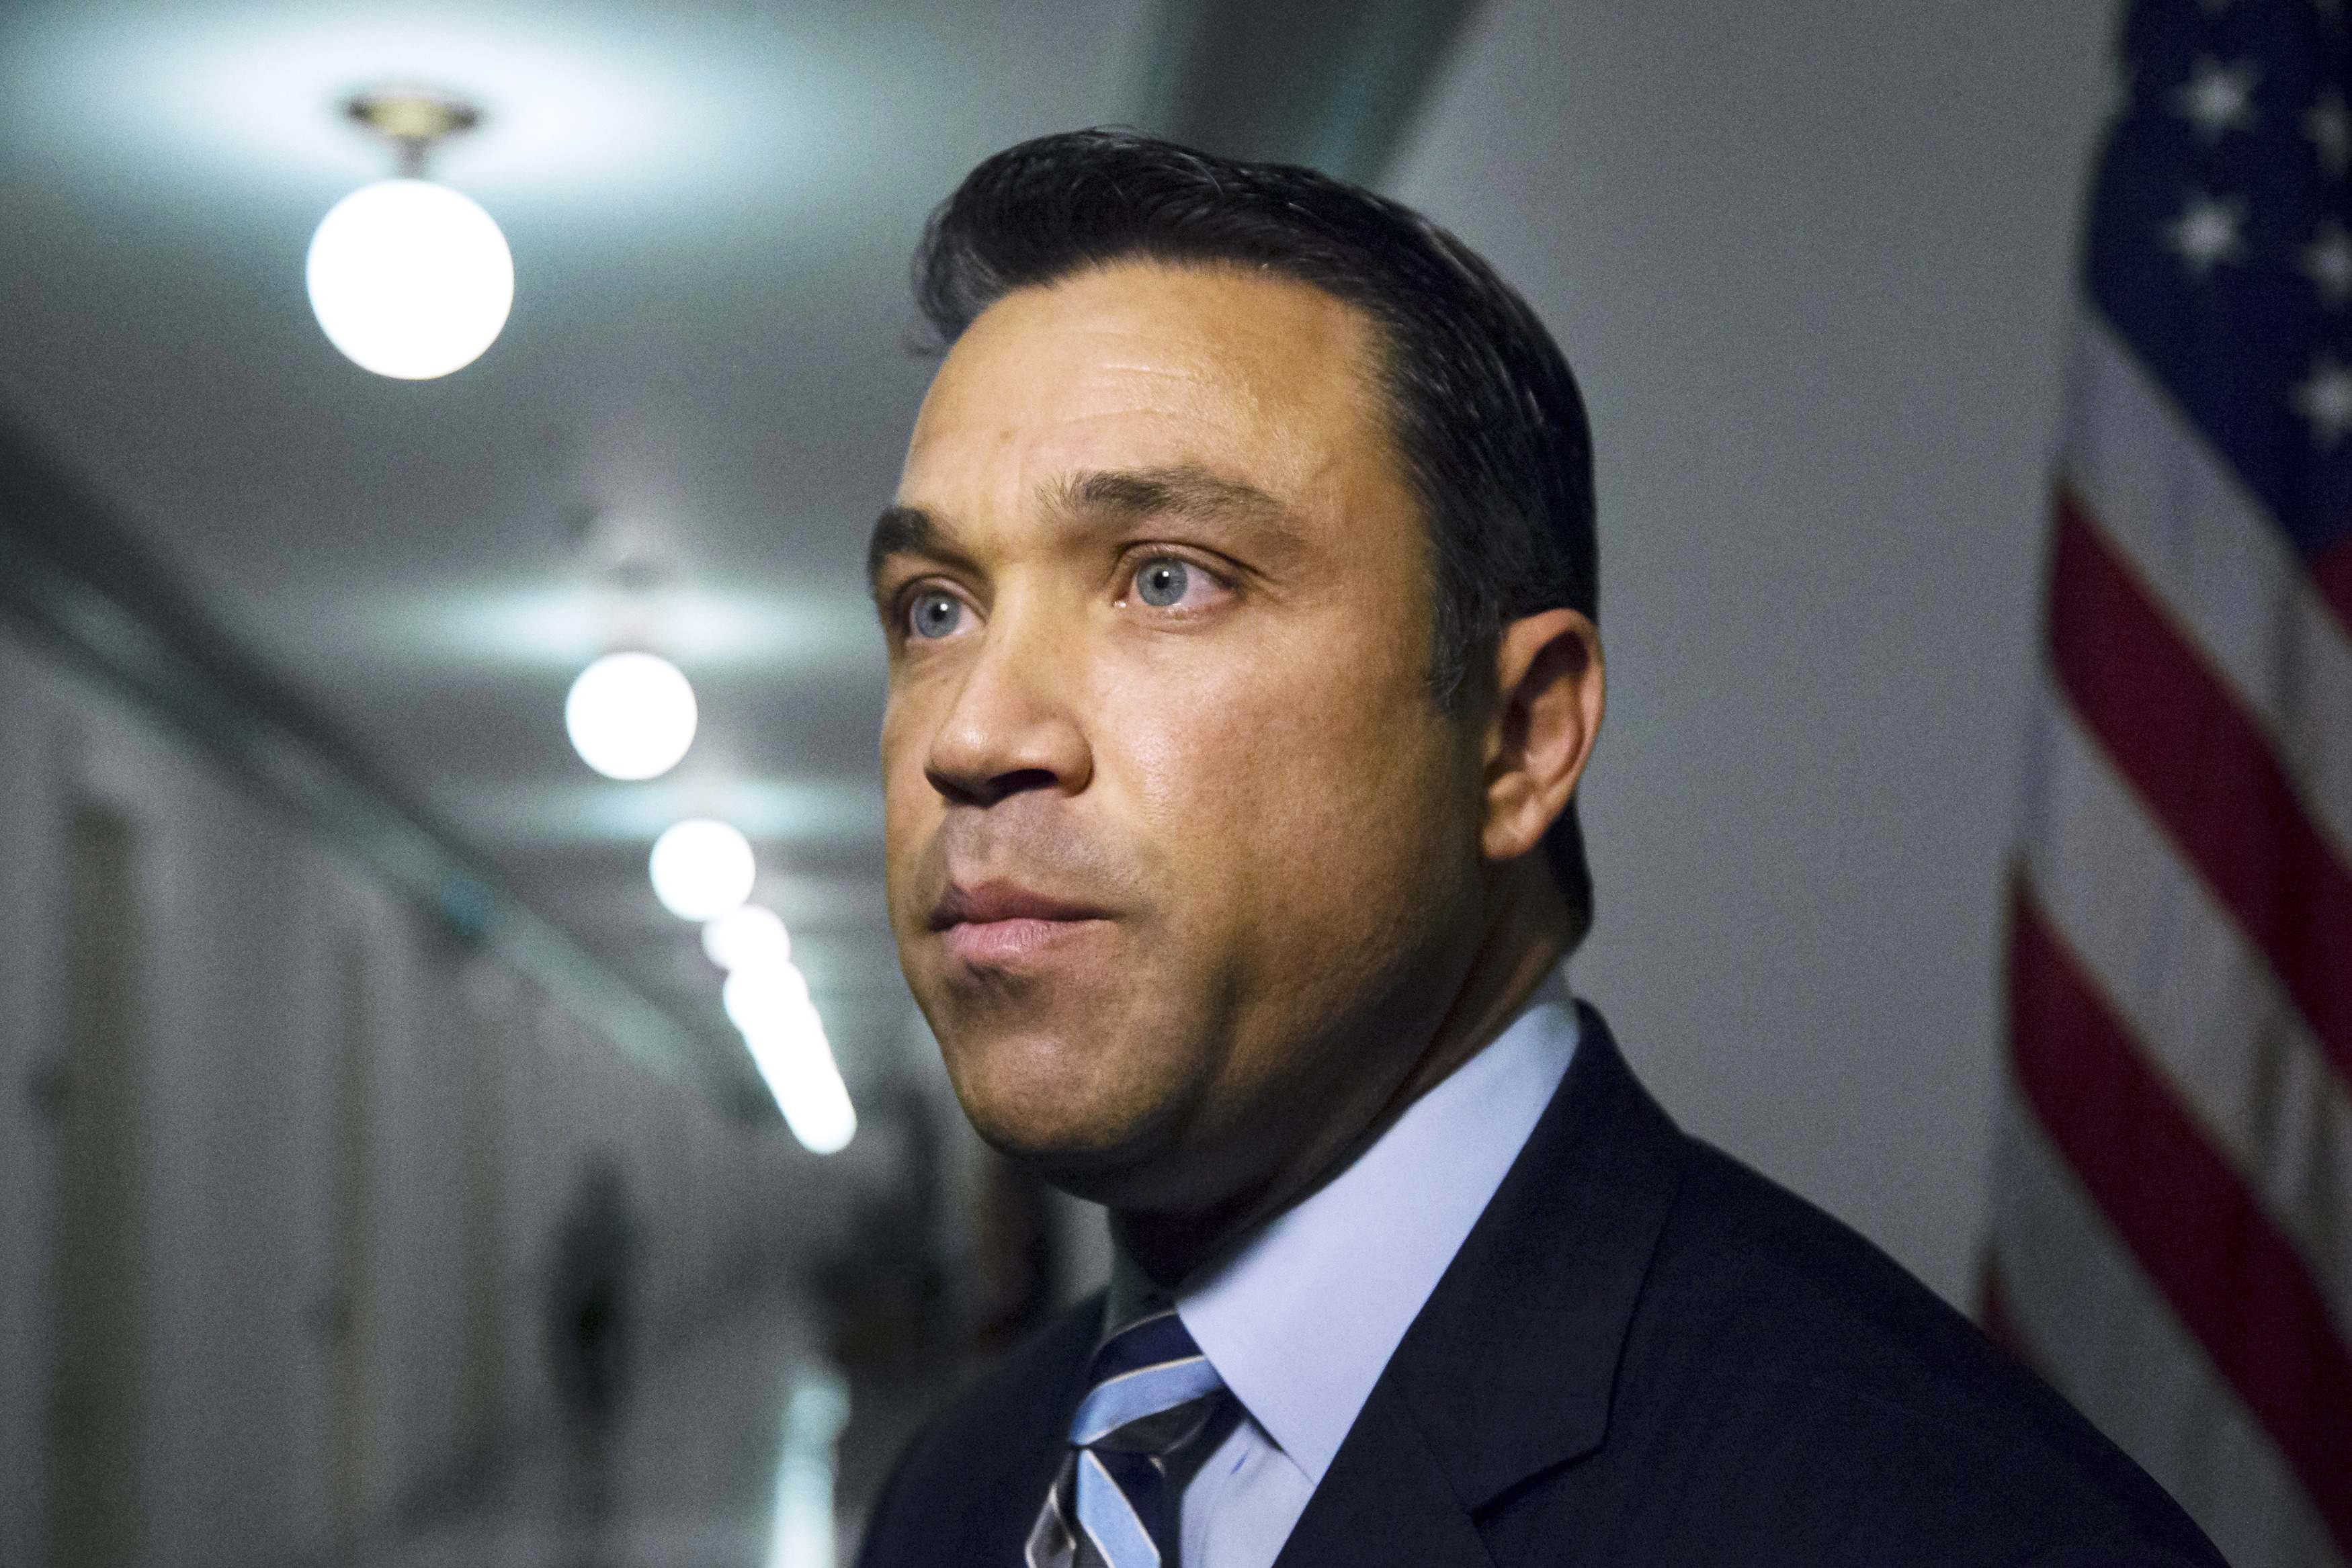 U.S. Representative Michael Grimm (R-NY) talks to reporters outside his office on Capitol Hill in Washington April 29, 2014.